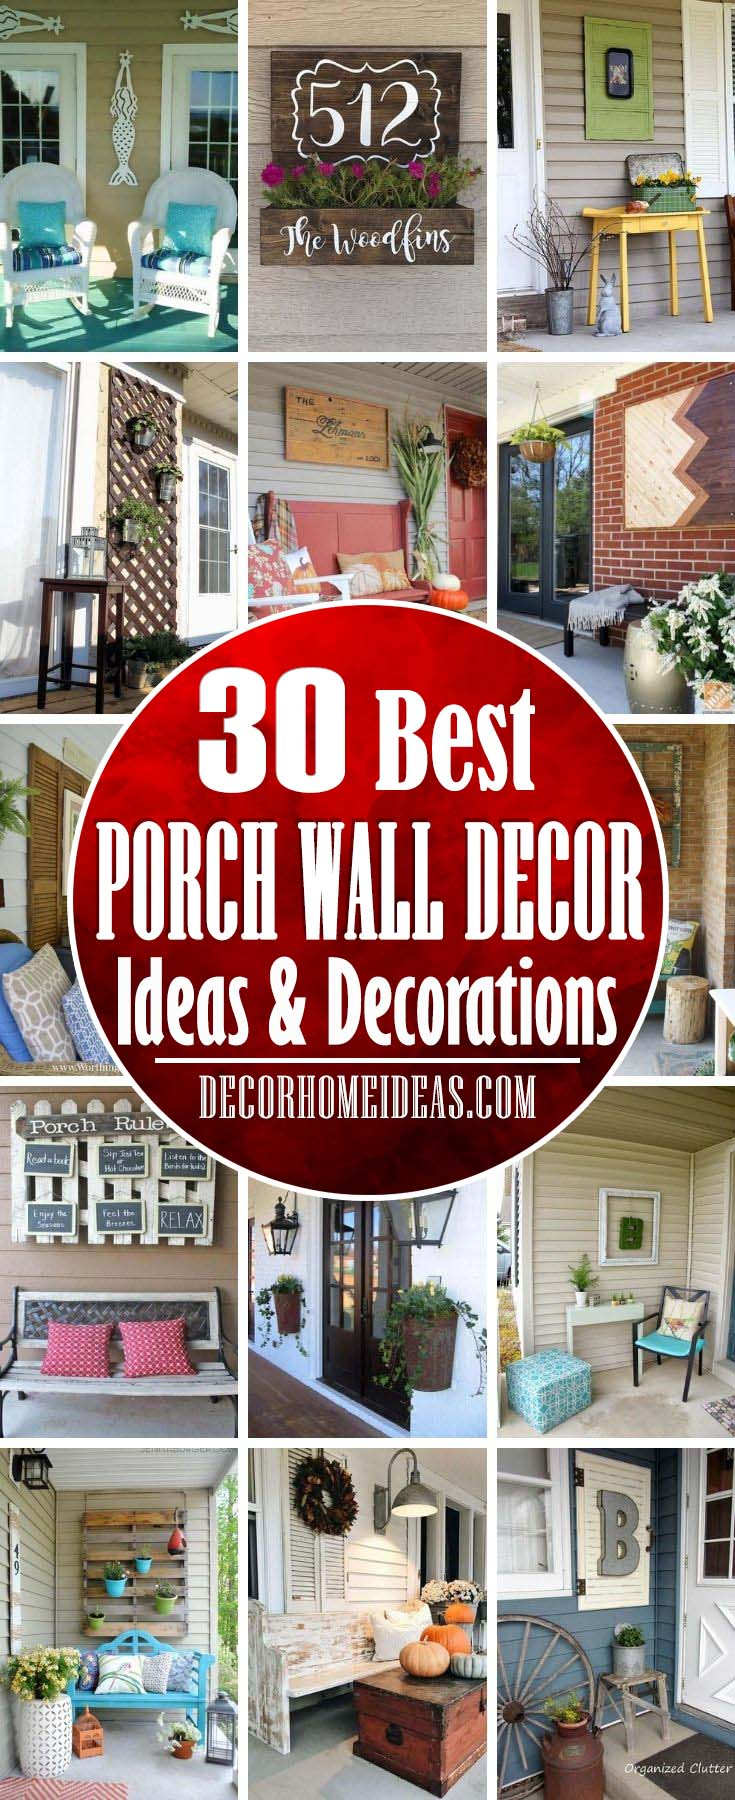 Best Porch Wall Decor Ideas. Find inspiration in these gorgeous outdoor wall decors and try your favorite porch design ideas at home. #decorhomeideas